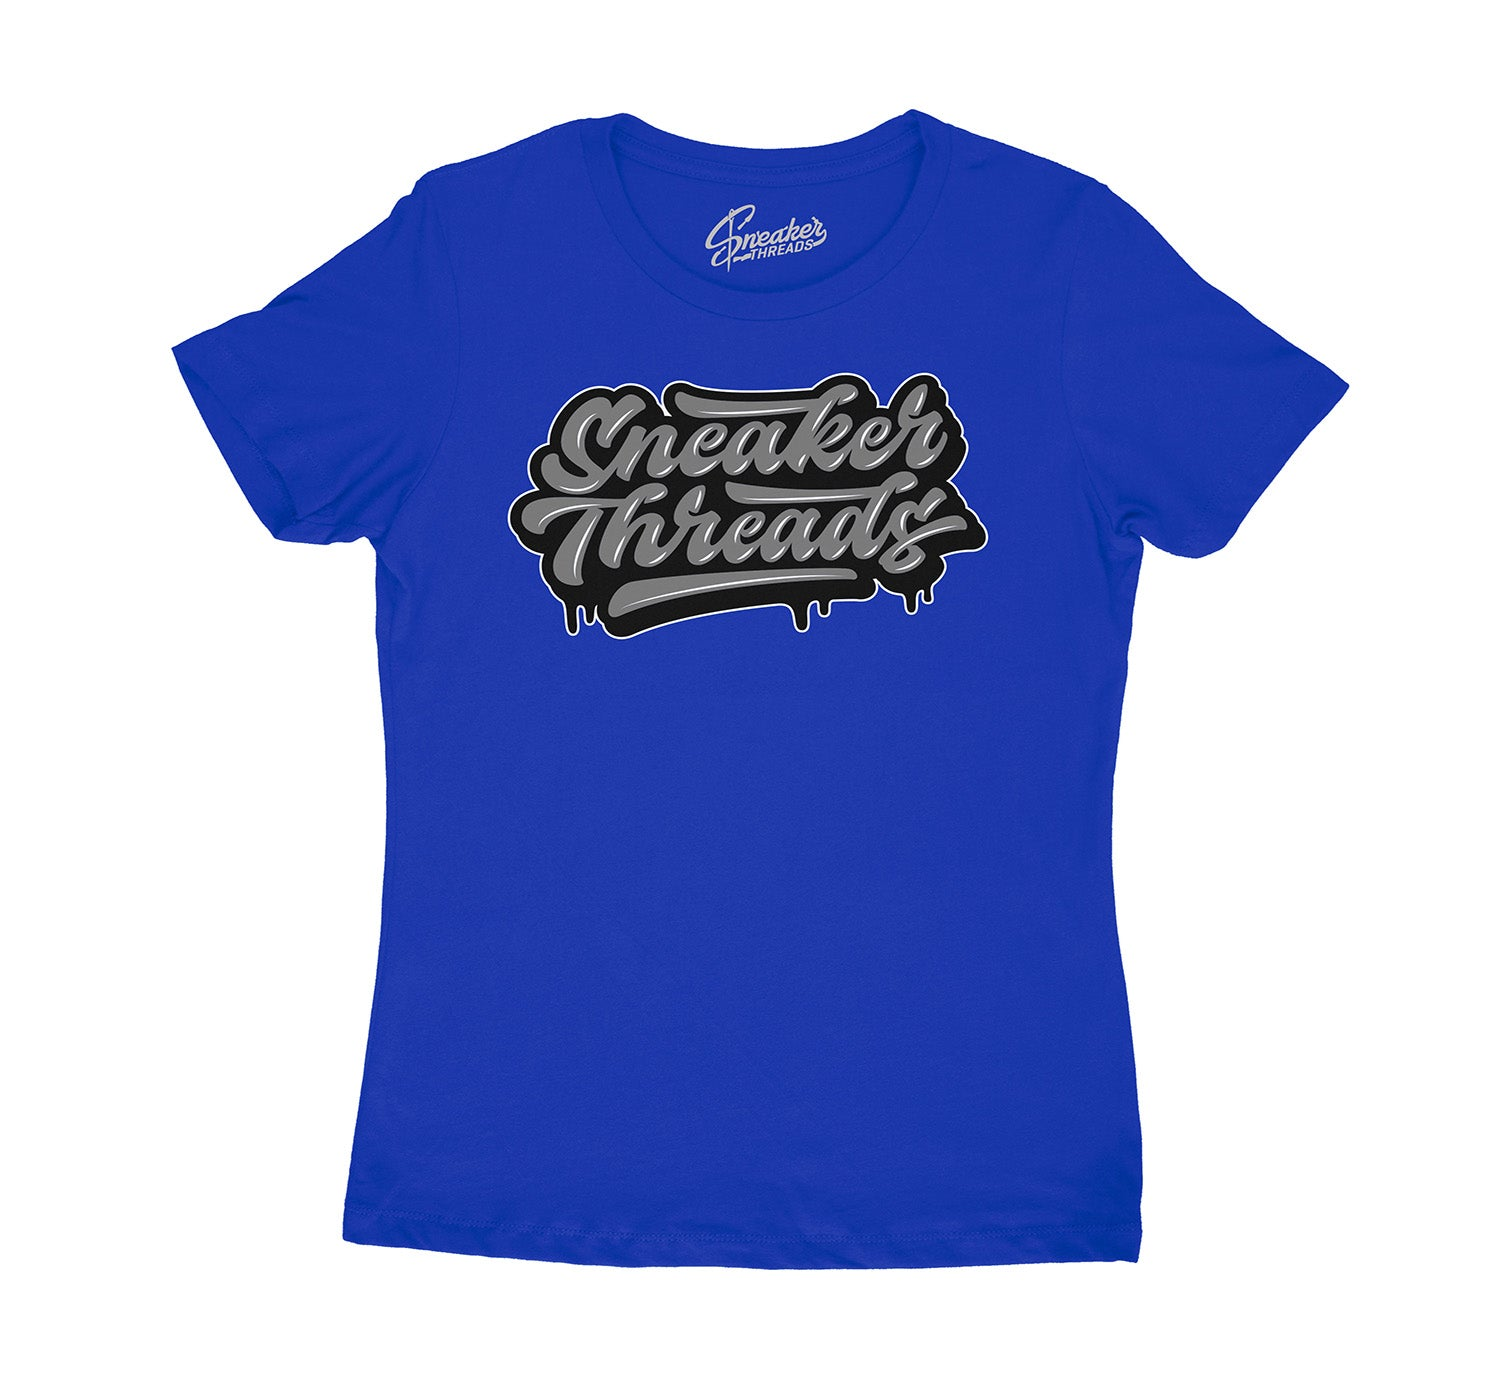 Females Jordan 10 royal blue sneaker has ladies tees to match